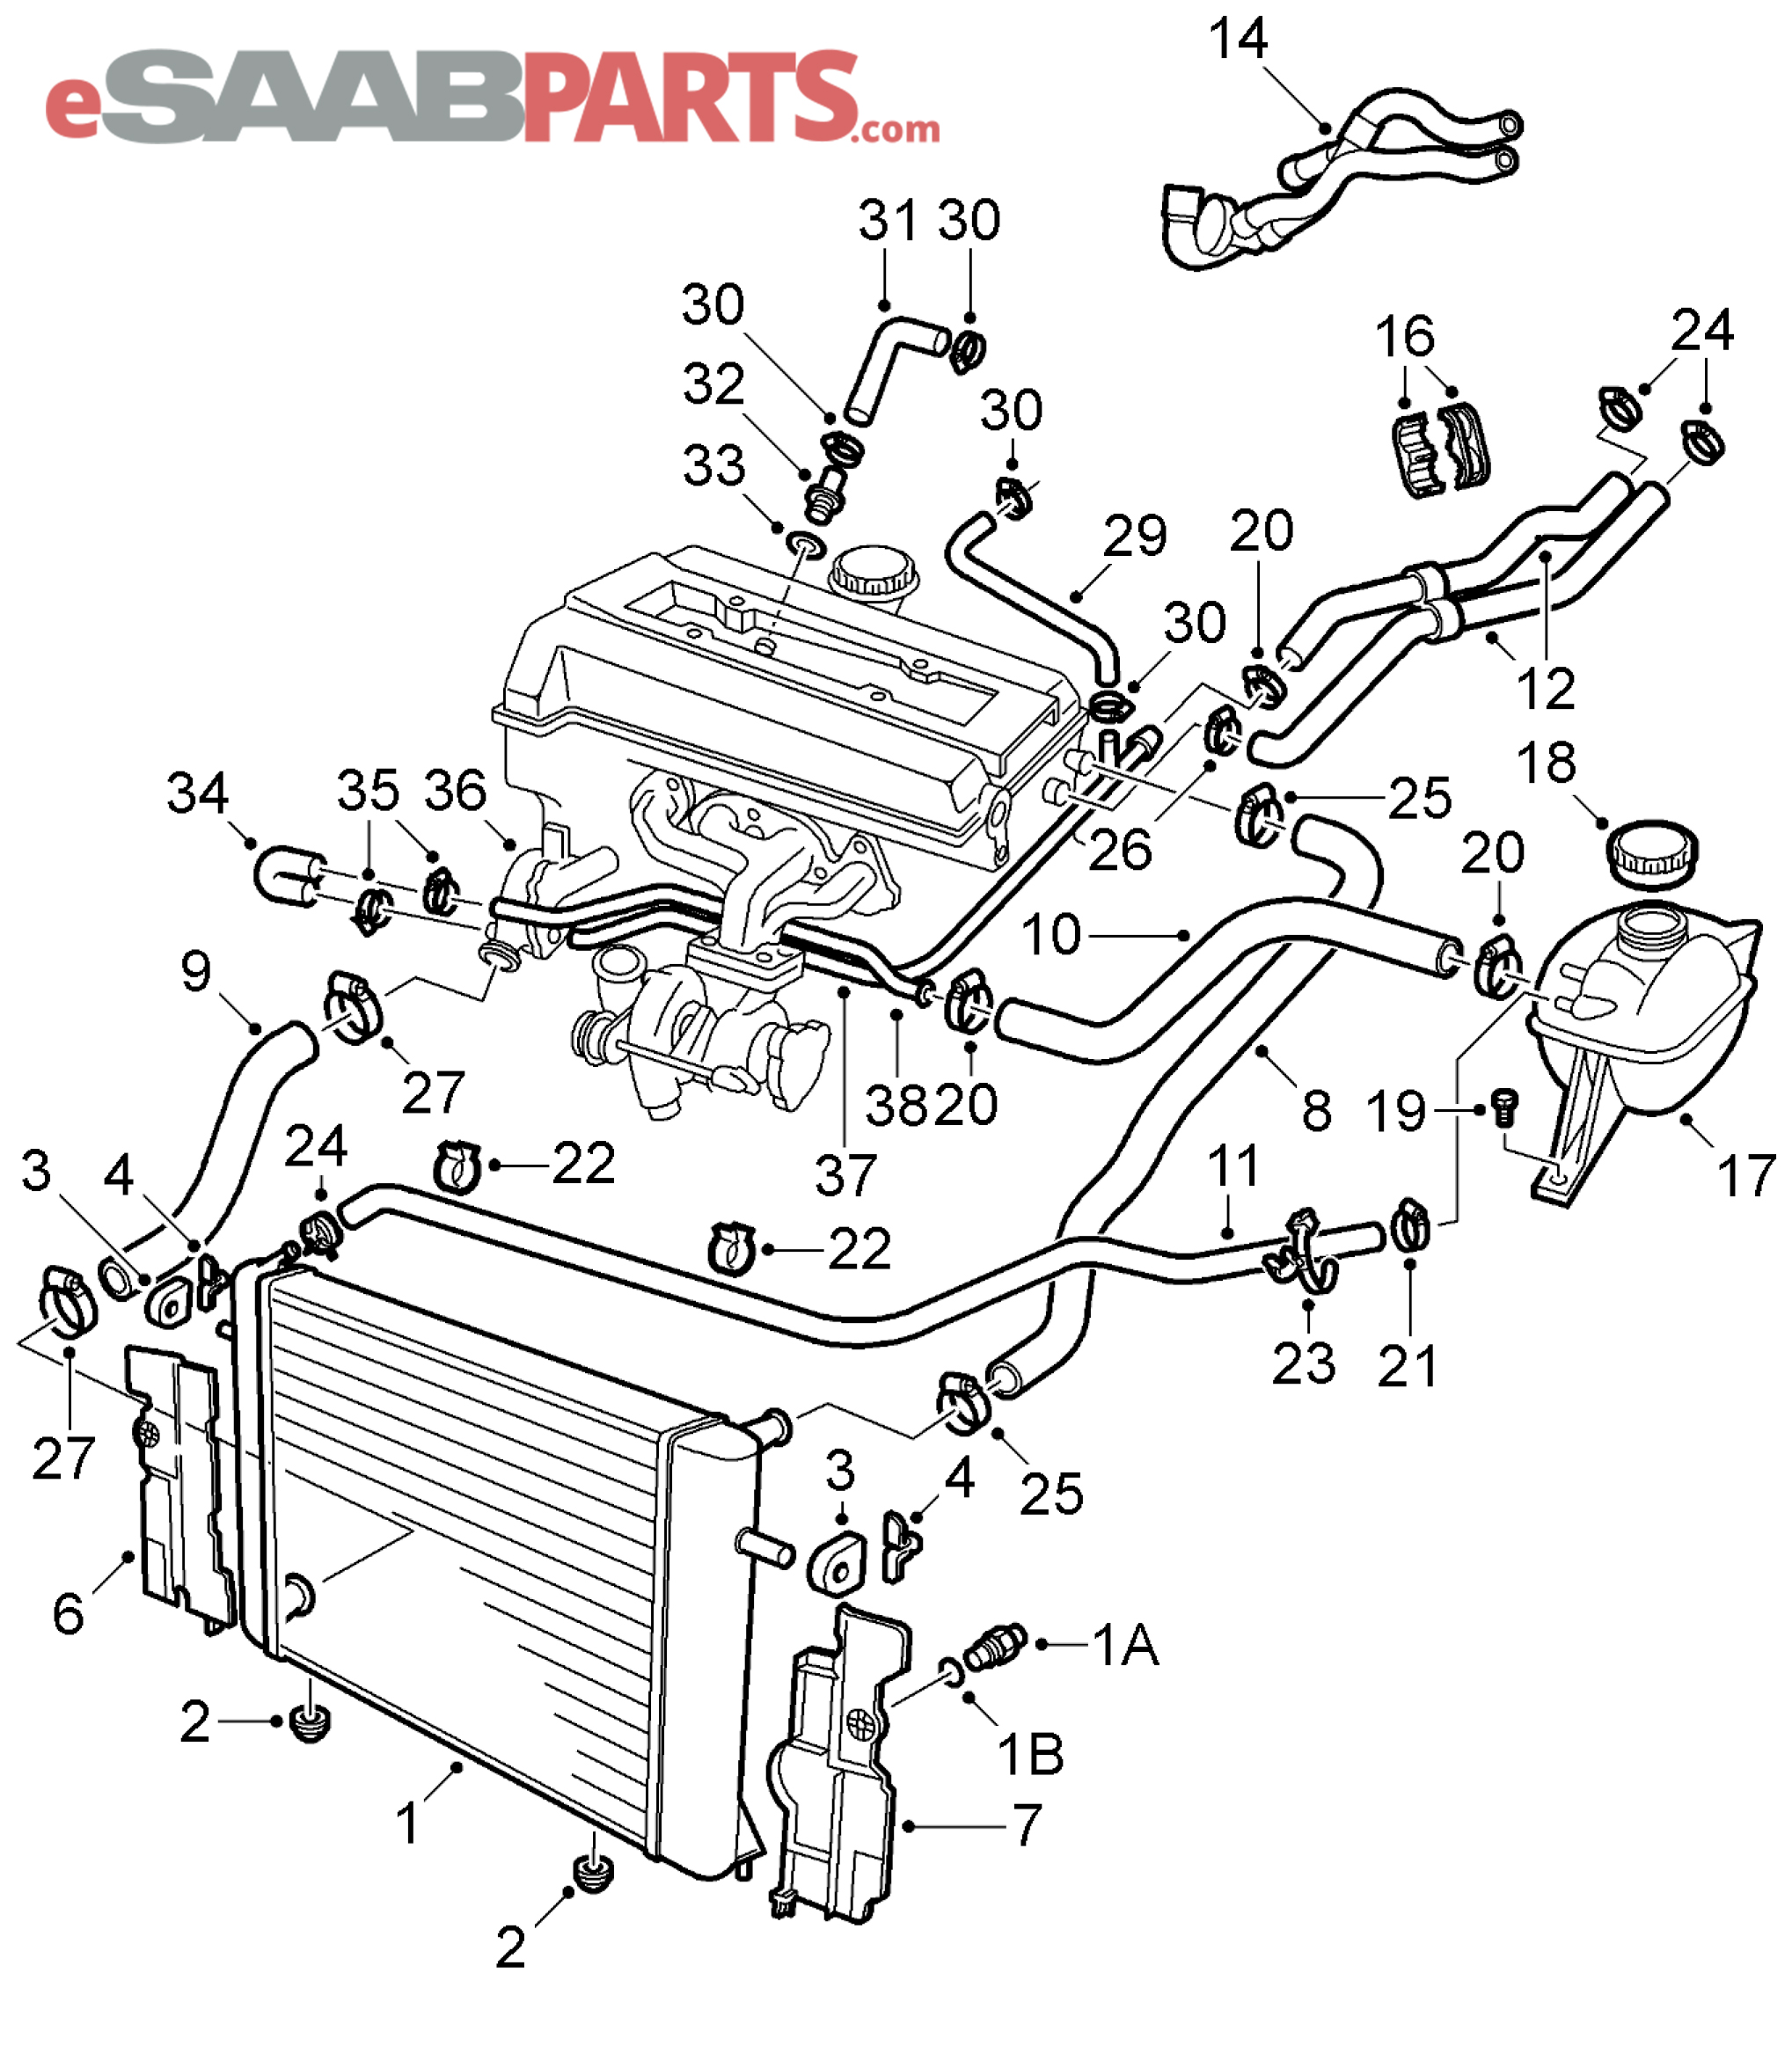 [DIAGRAM] 2004 Saab 9 3 Fuel Pump Wiring Diagram FULL